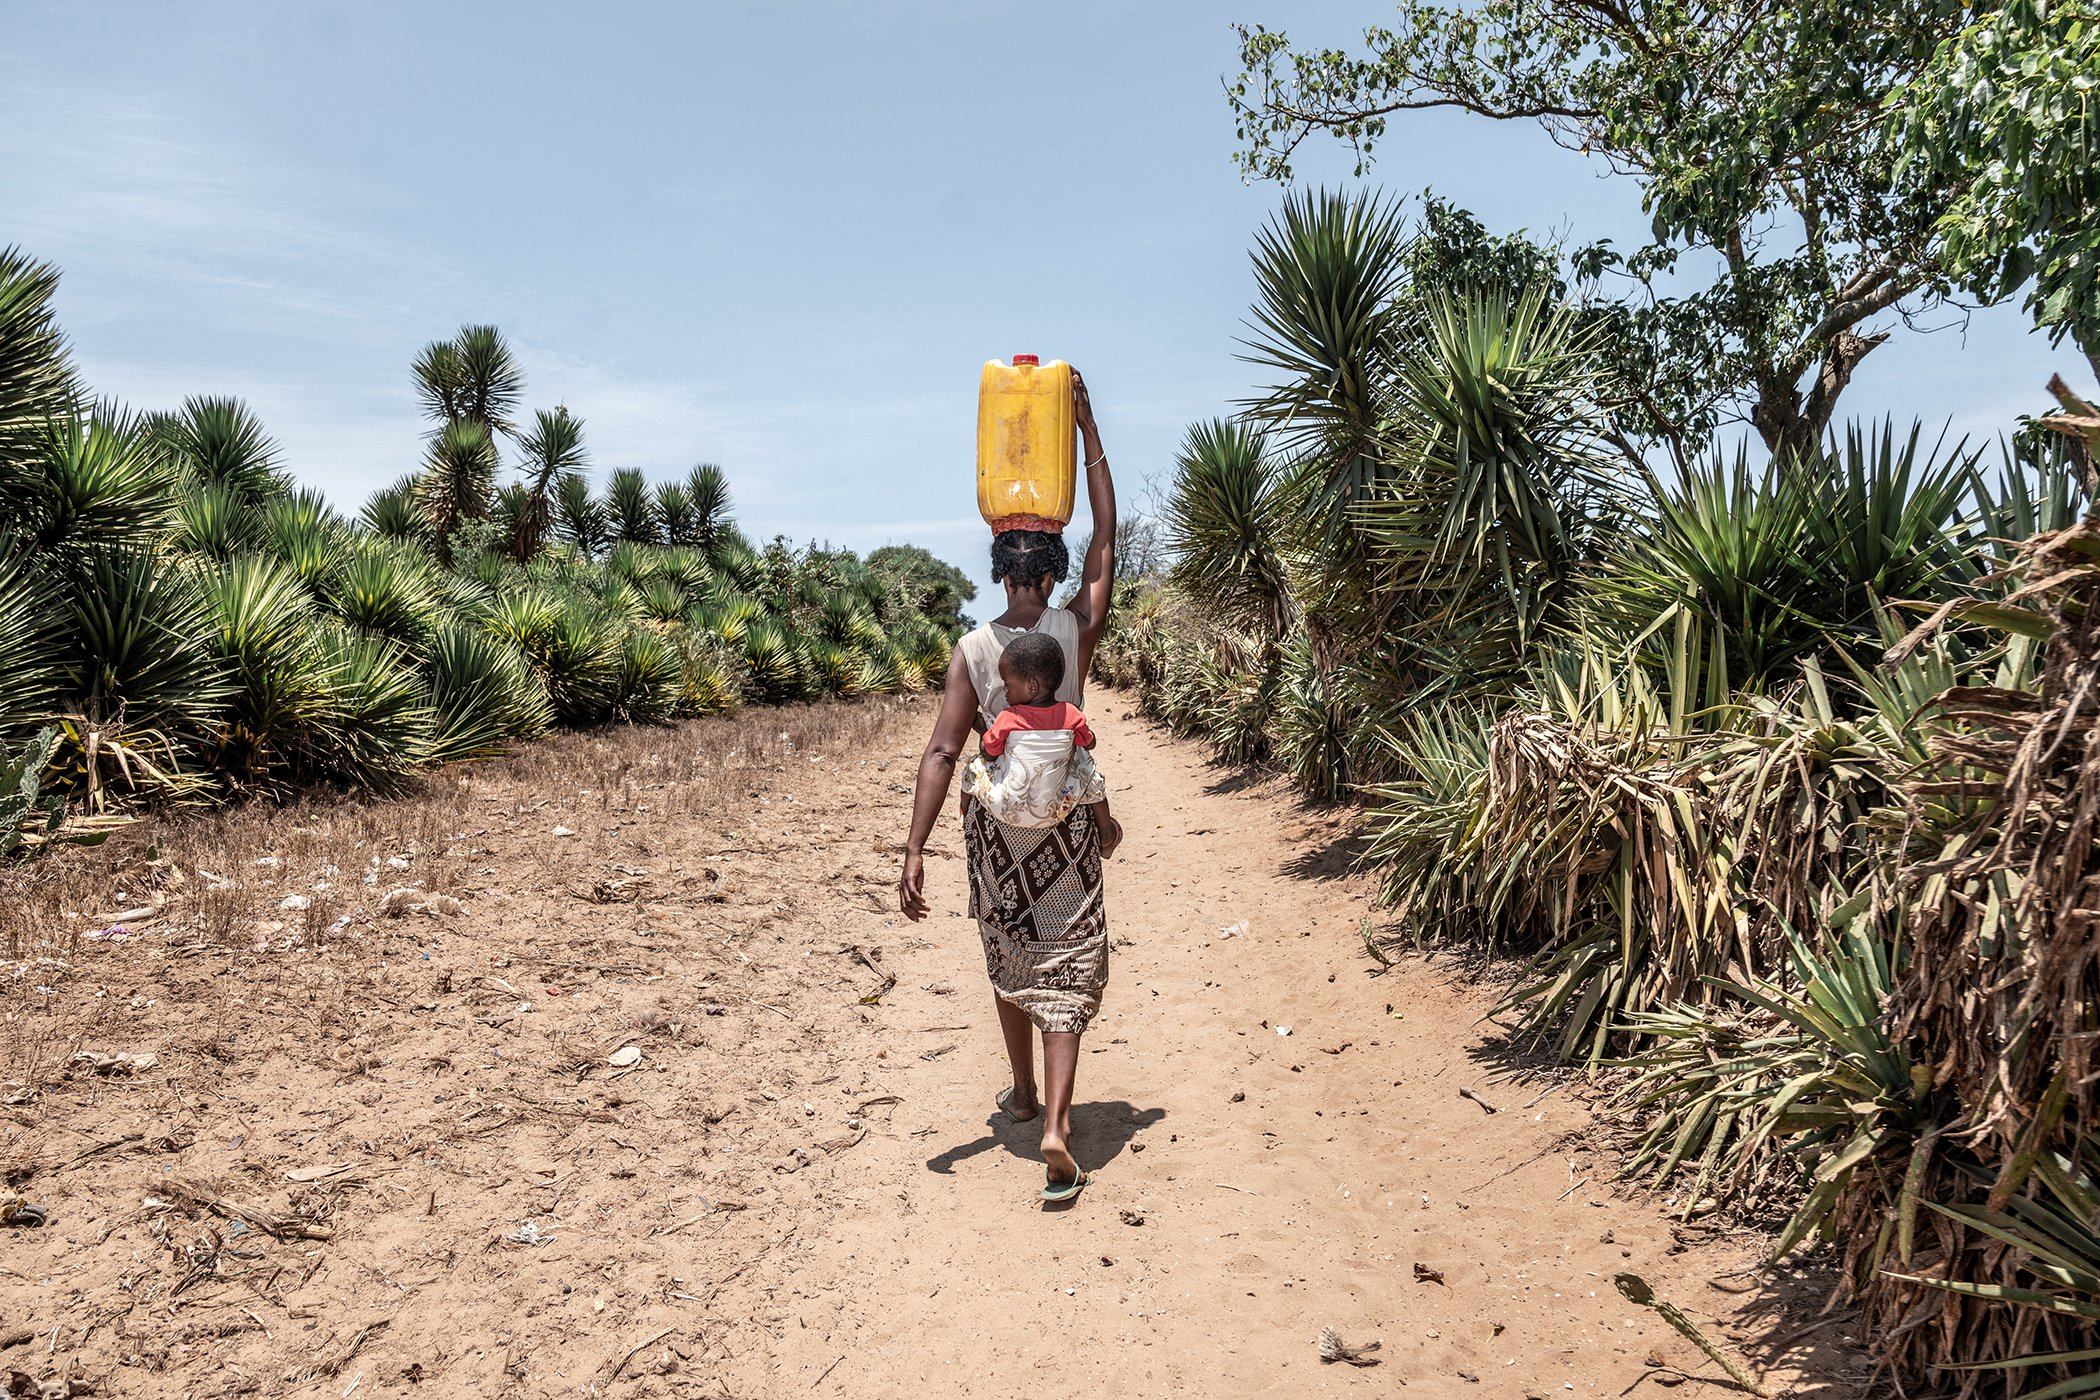 UNICEF-Access-To-Water-Around-The-World-2021-Report-002.jpg